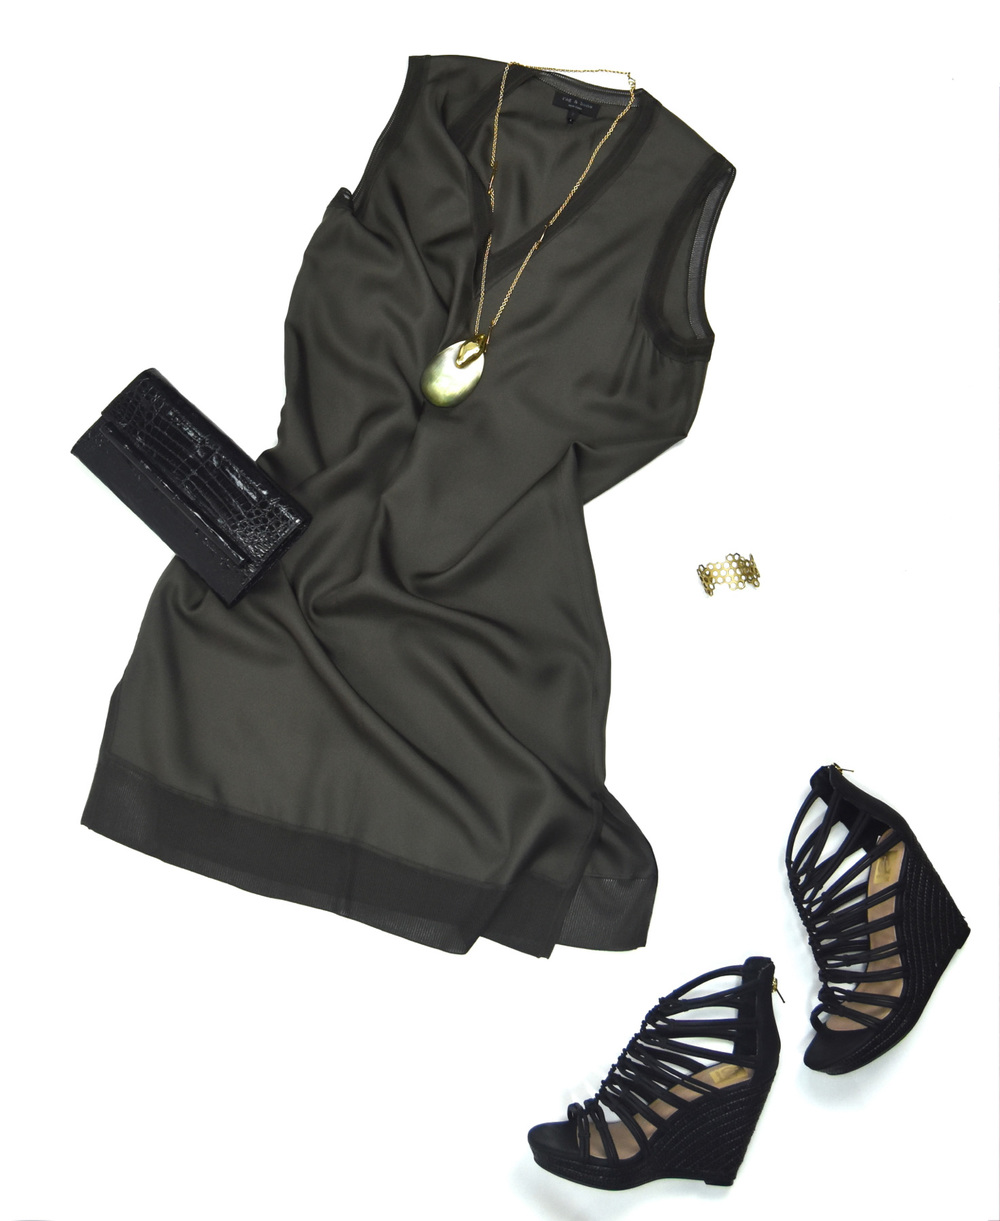 Rag & Bone dress, Dolce Vita Wedges, Nancy Gonzalez clutch, Alexis Bittar necklace